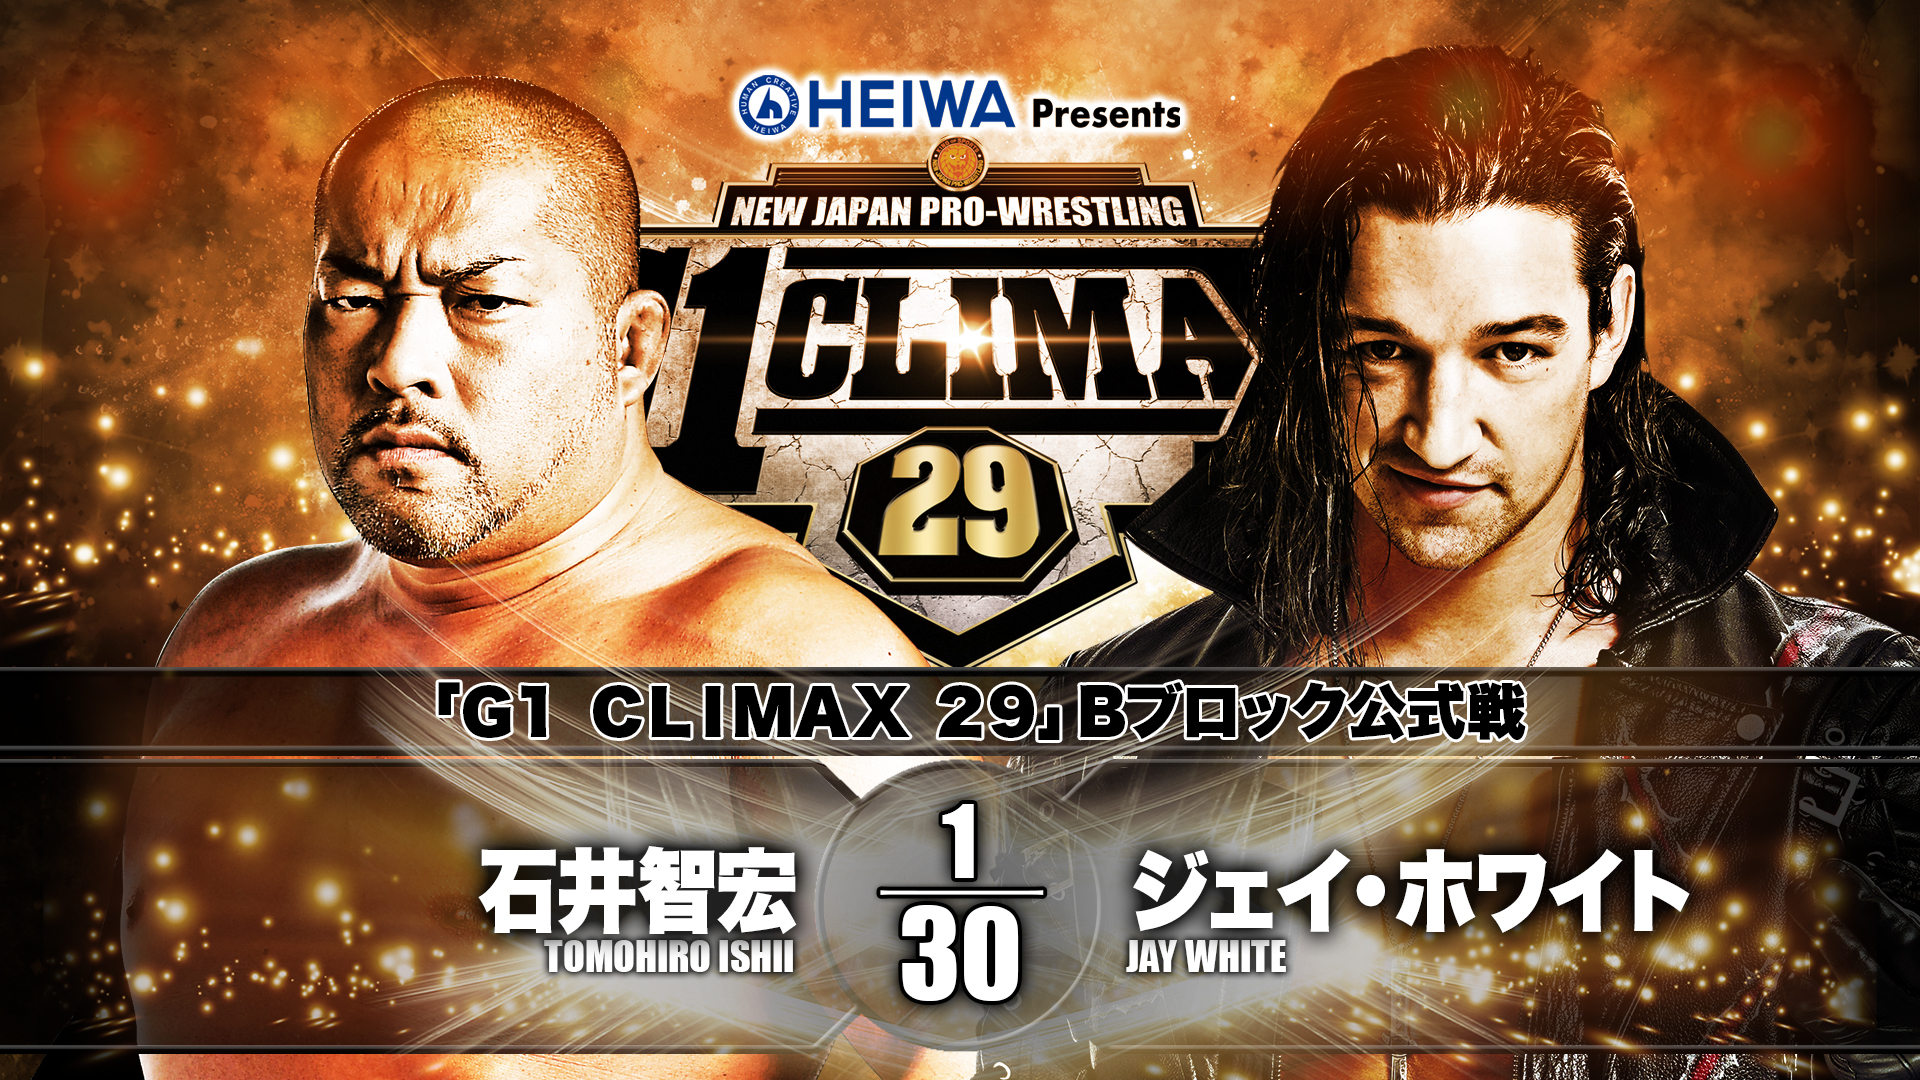 G1 Climax 29 night 4 at a glance | NEW JAPAN PRO-WRESTLING